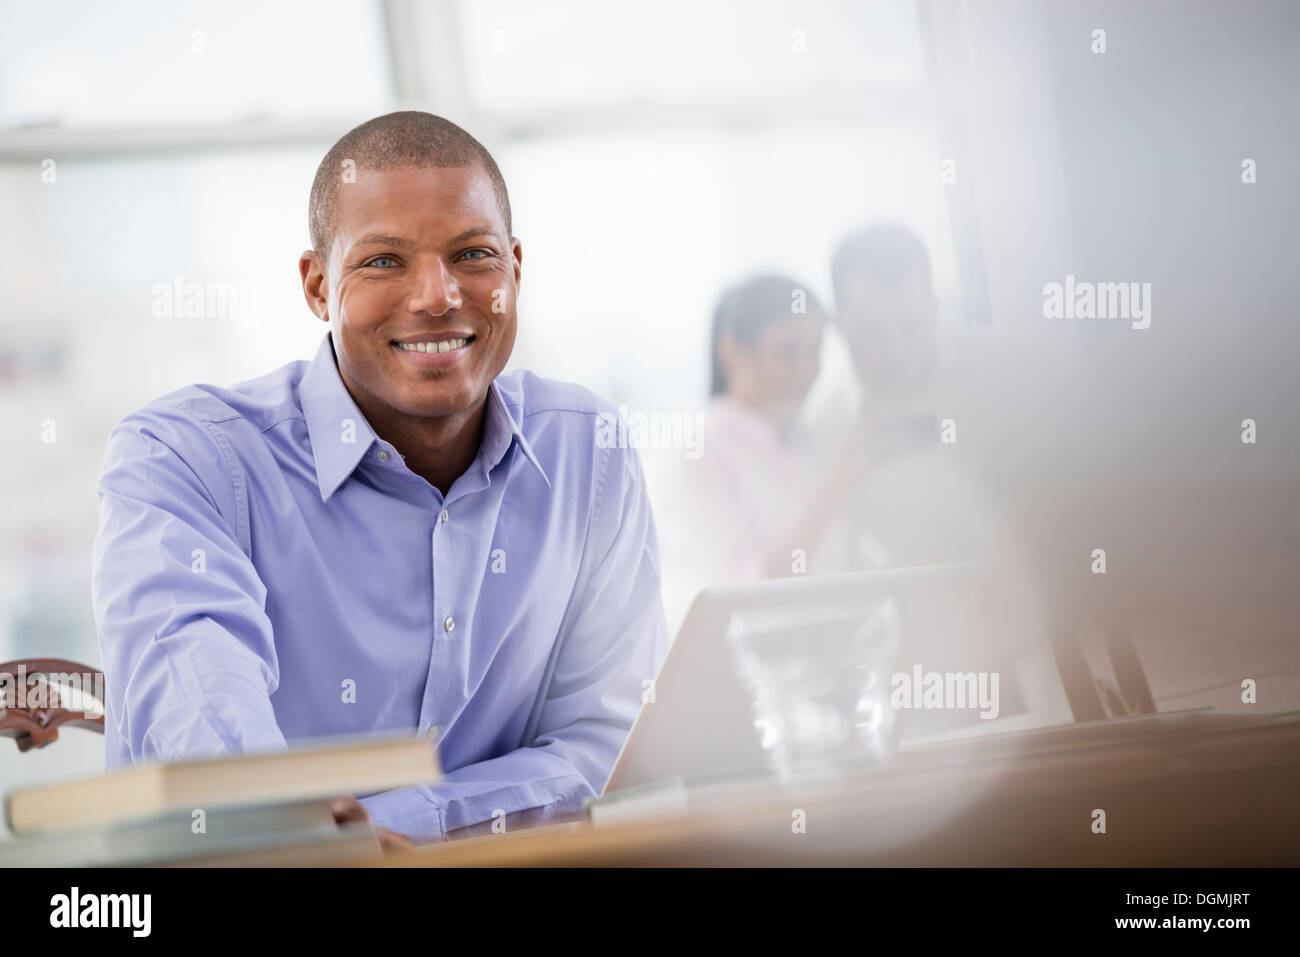 Office life. A man in a blue shirt. - Stock Image